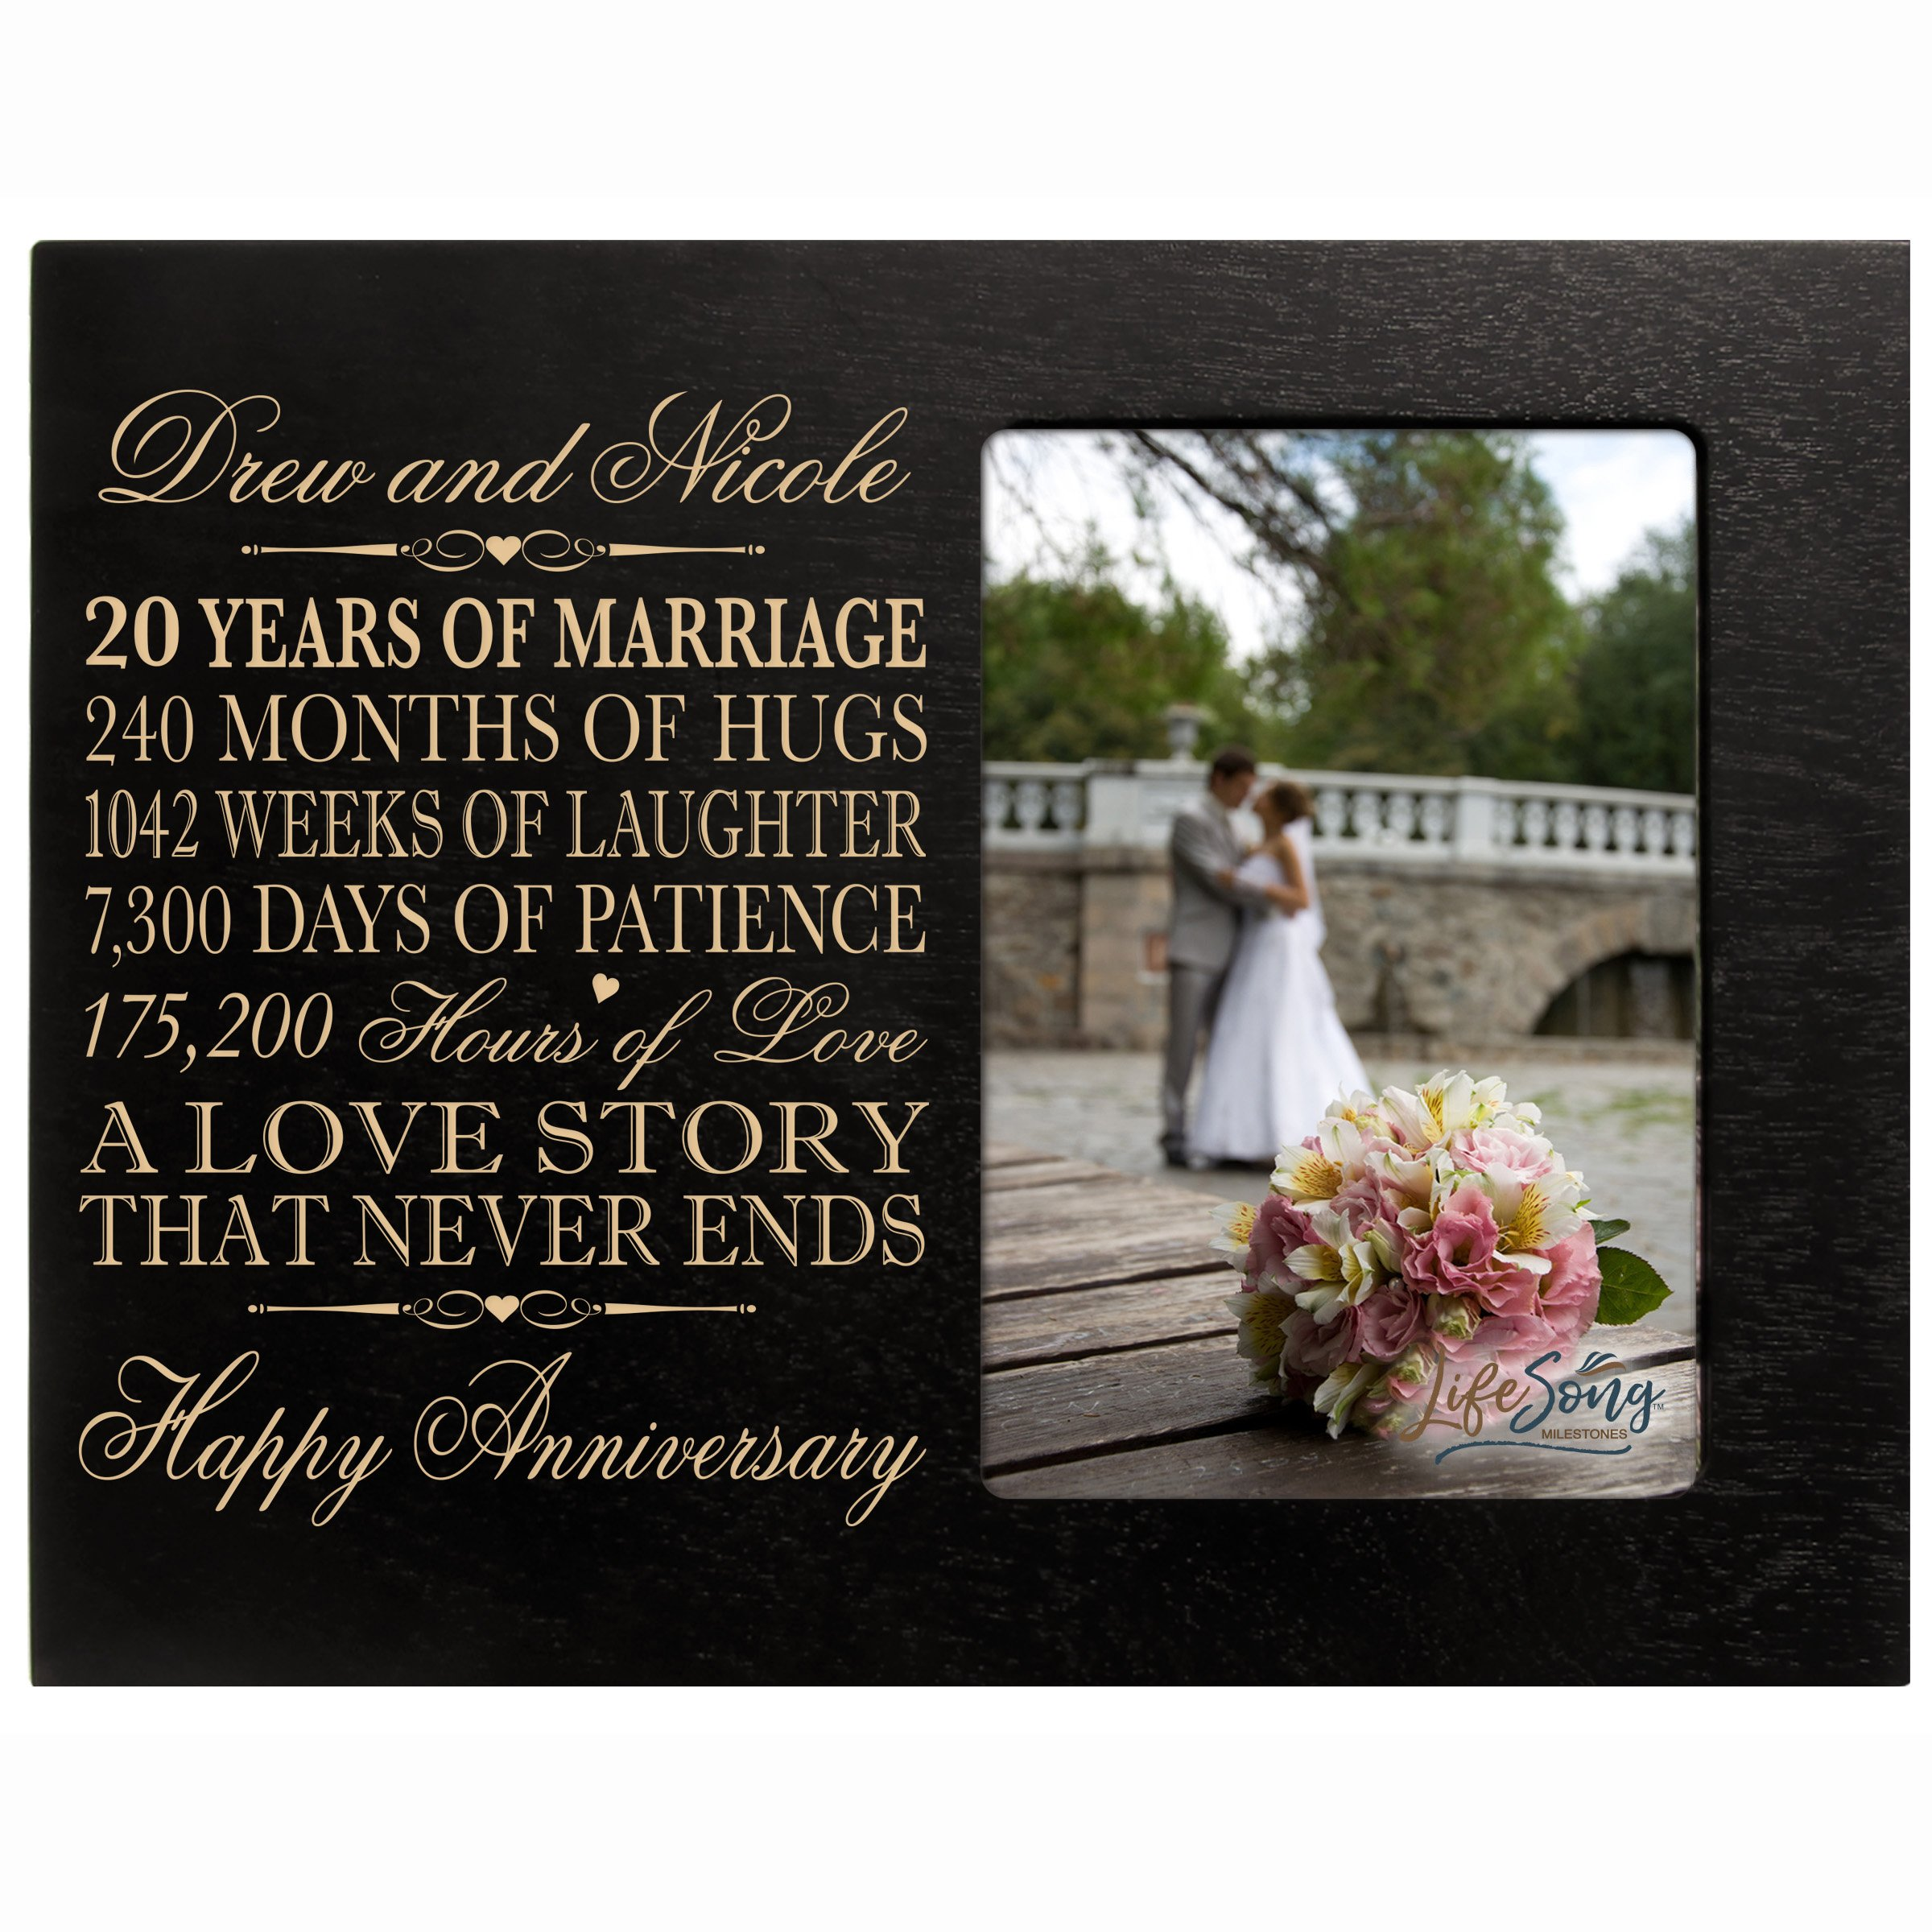 LifeSong Milestones Personalized 20 Year Wedding Frame Holds 4x6 Photo Frame Size 10'' w x 8'' h x 1/2''